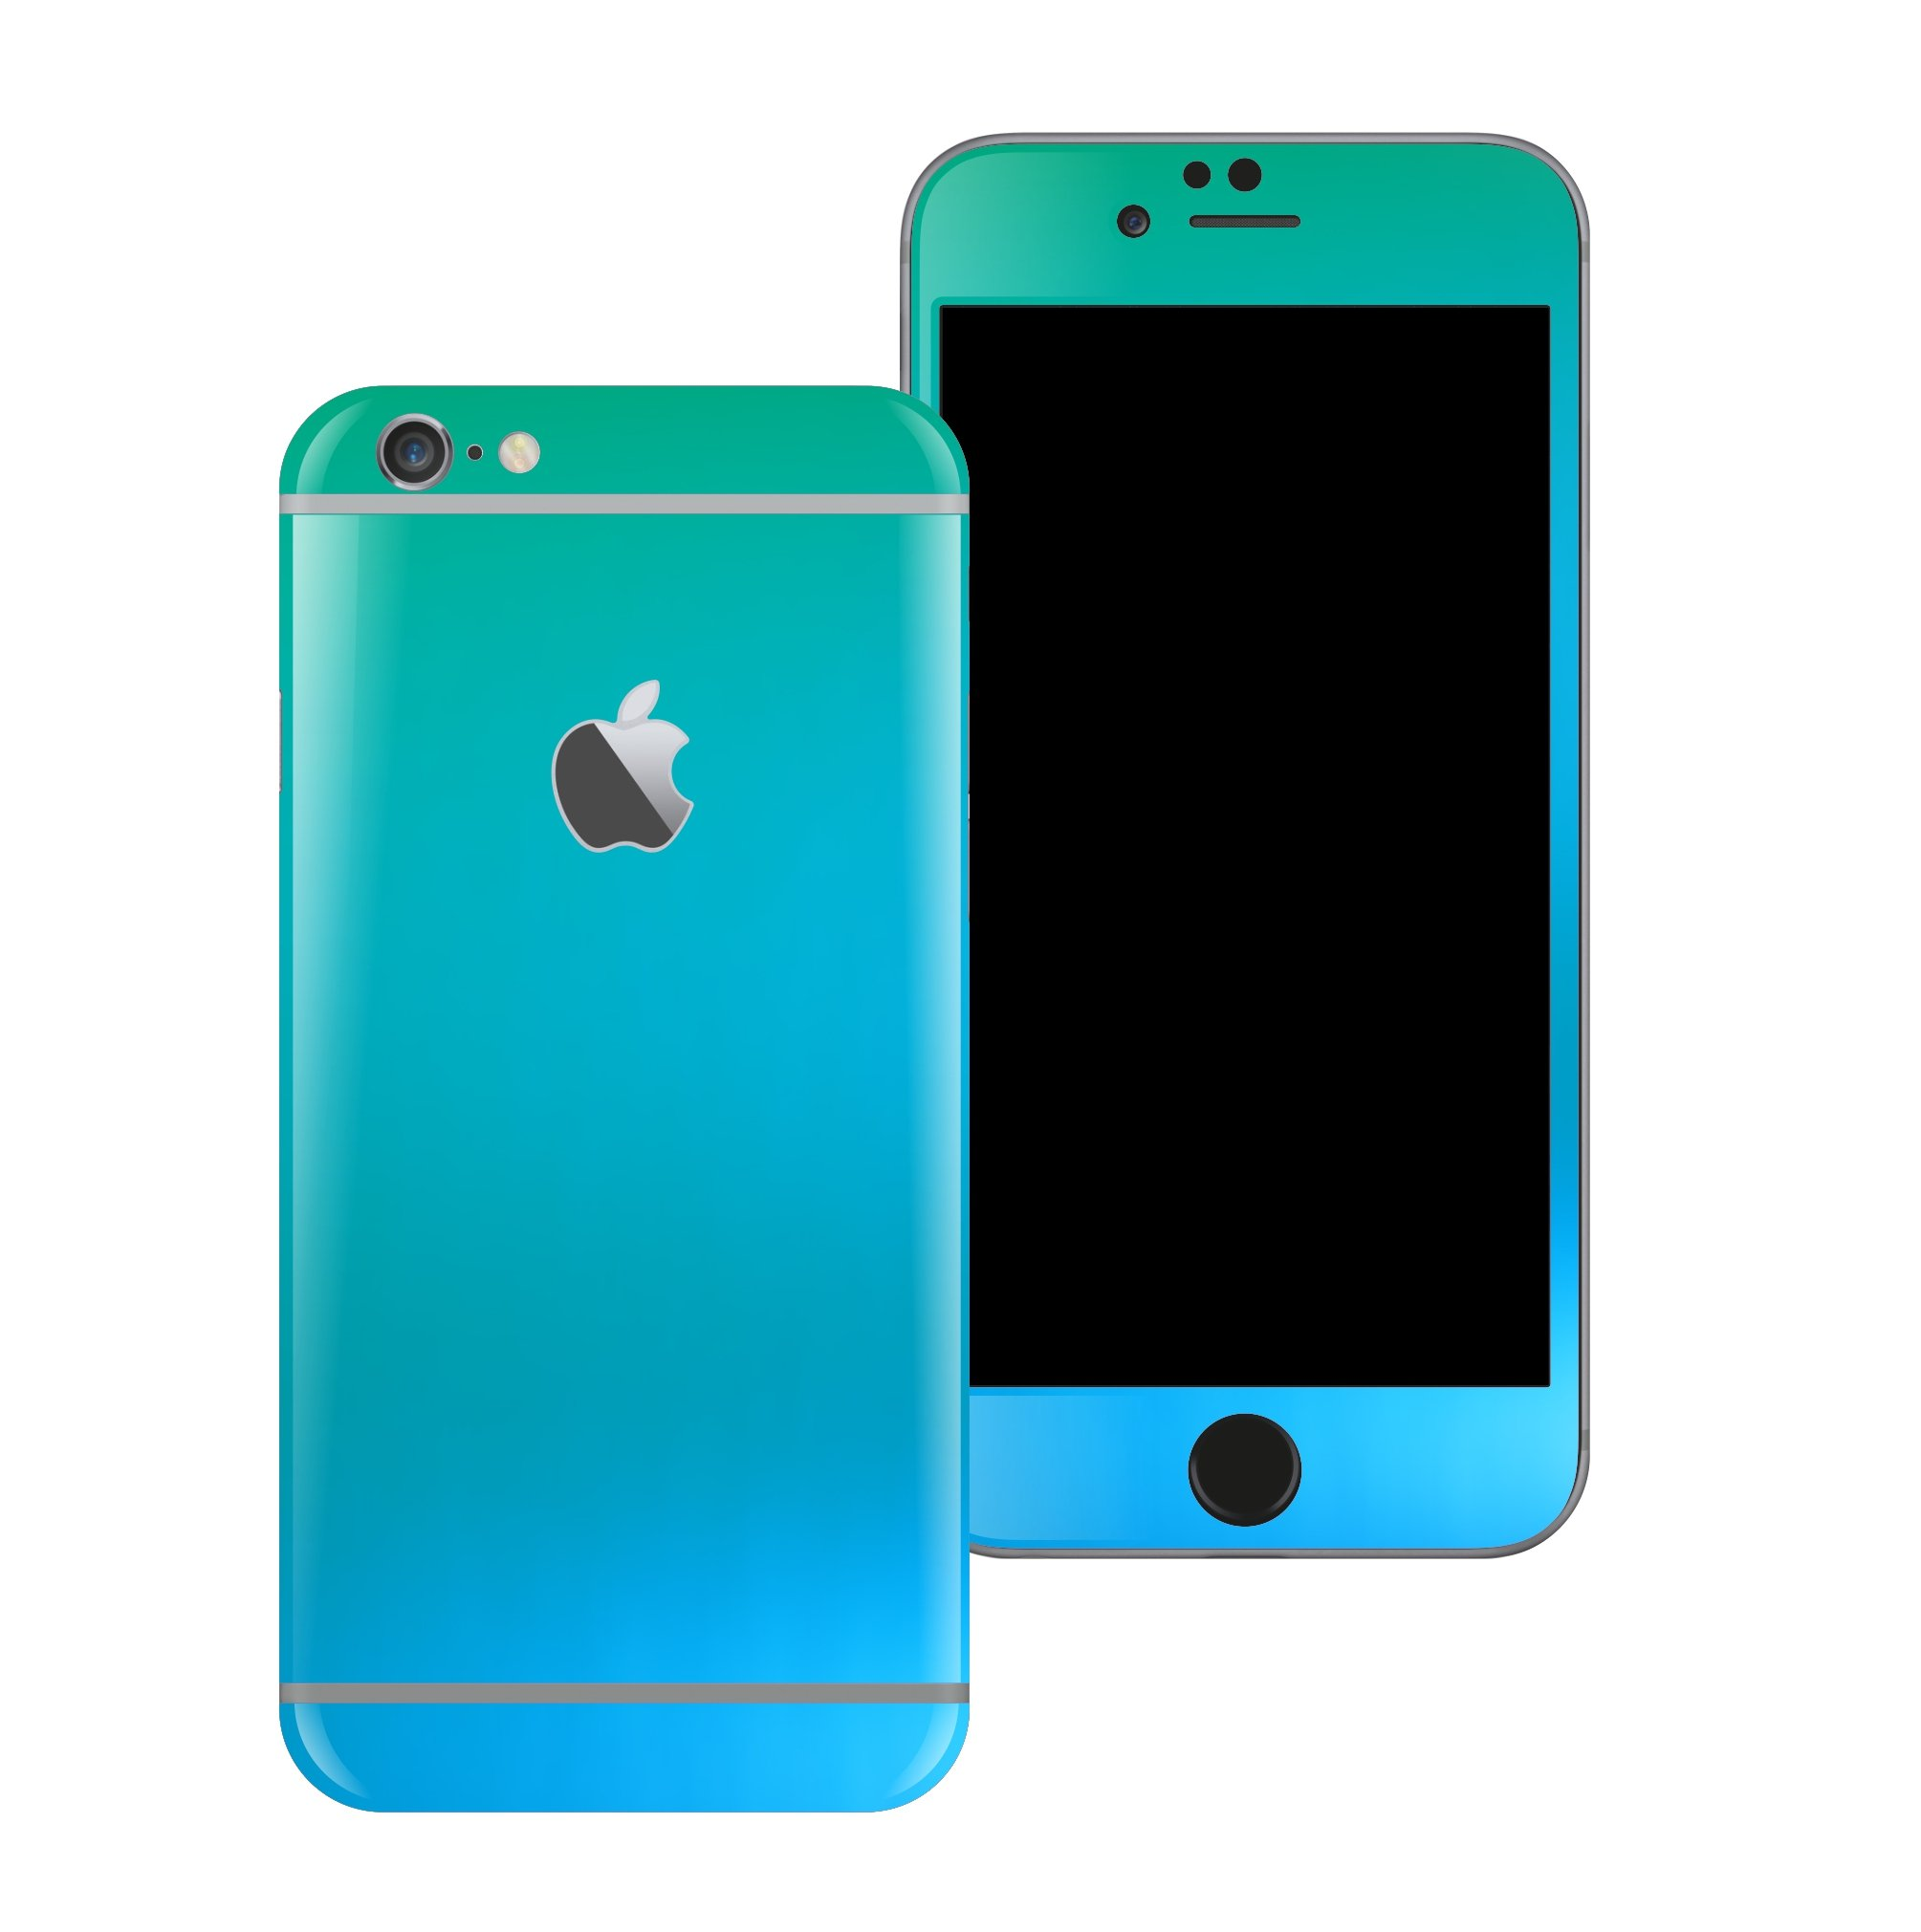 iPhone 6 Chameleon Caribbean Matt Matte Metallic Skin Wrap Sticker Cover Protector Decal by EasySkinz